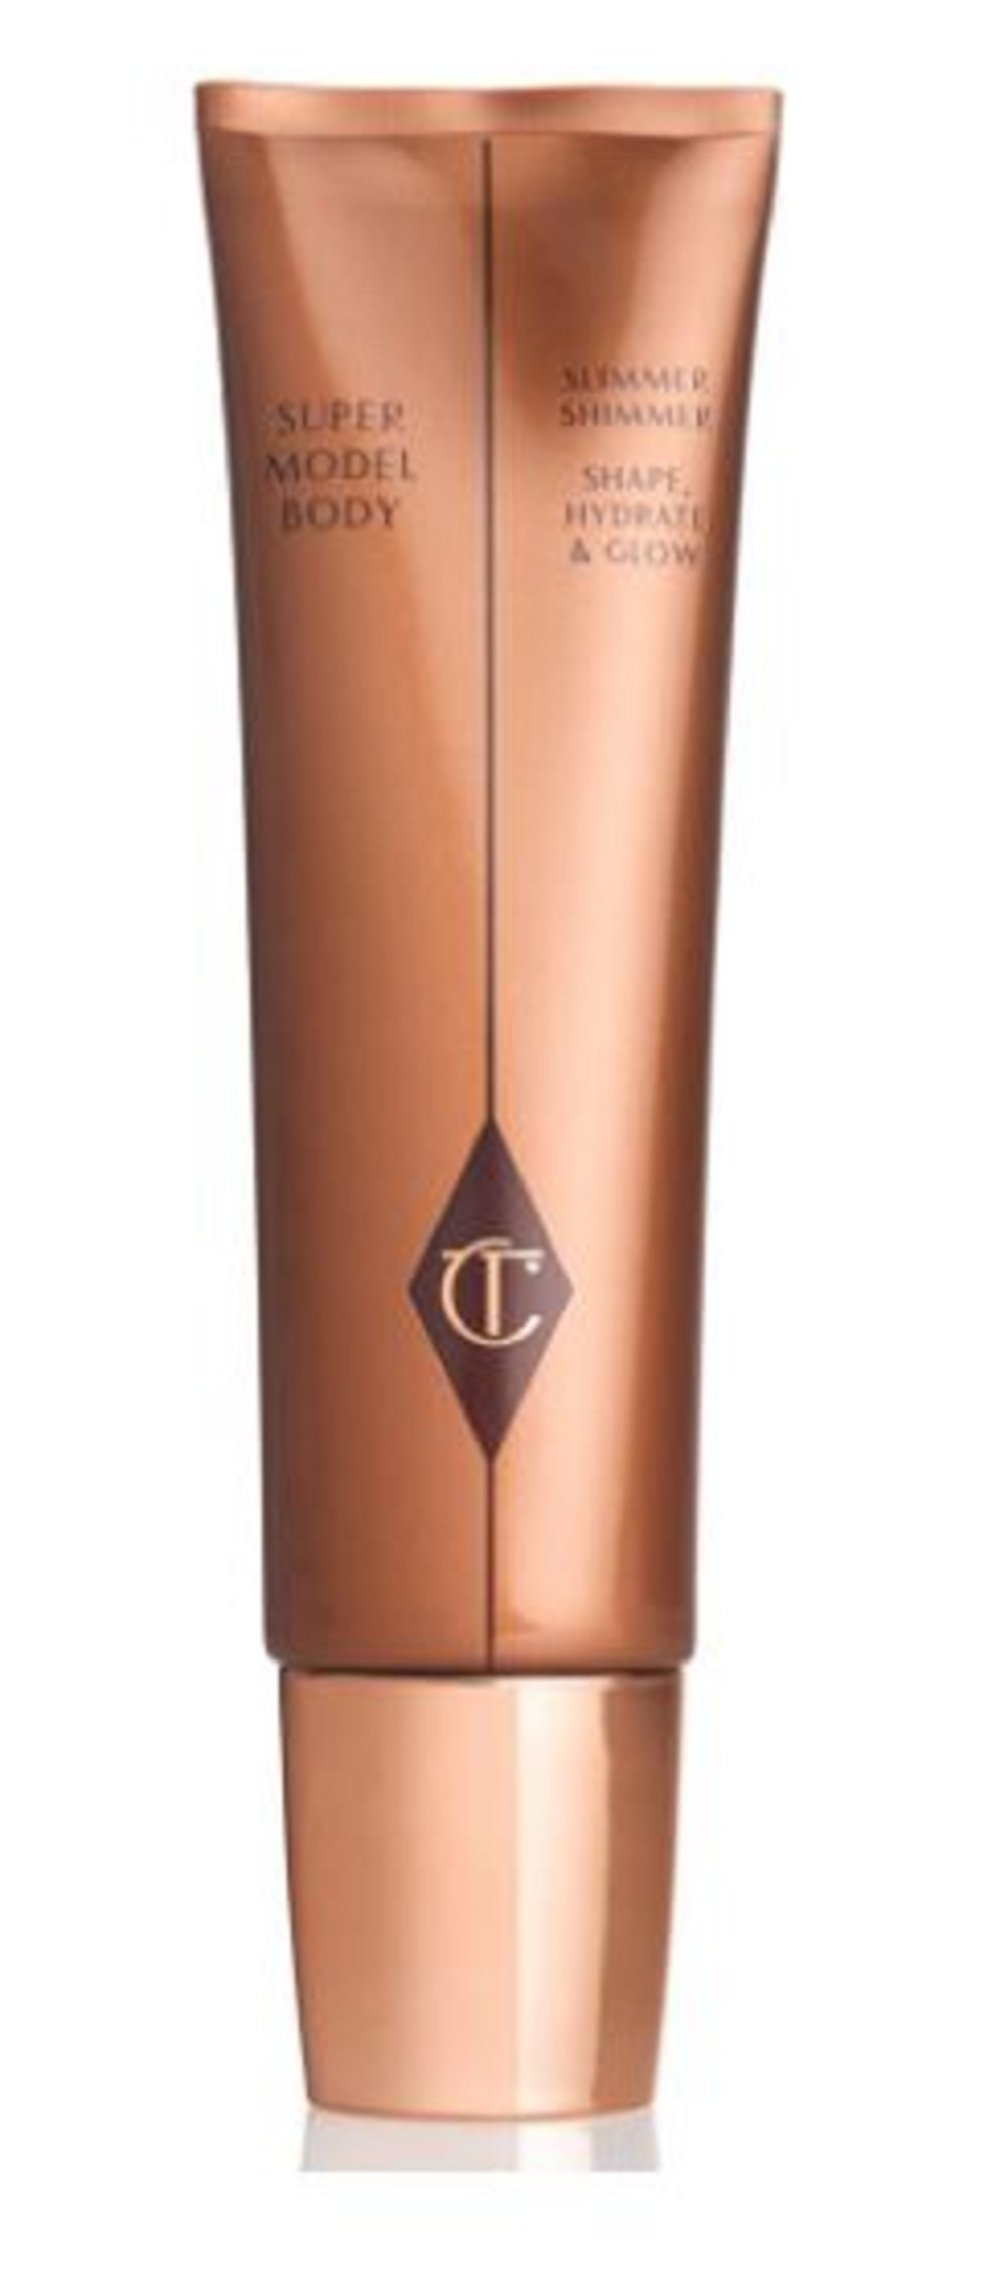 Exclusive New Supermodel Body Slimmer Shimmer: Shape, Hydrate & Glow 60ML - Charlotte Tilbury